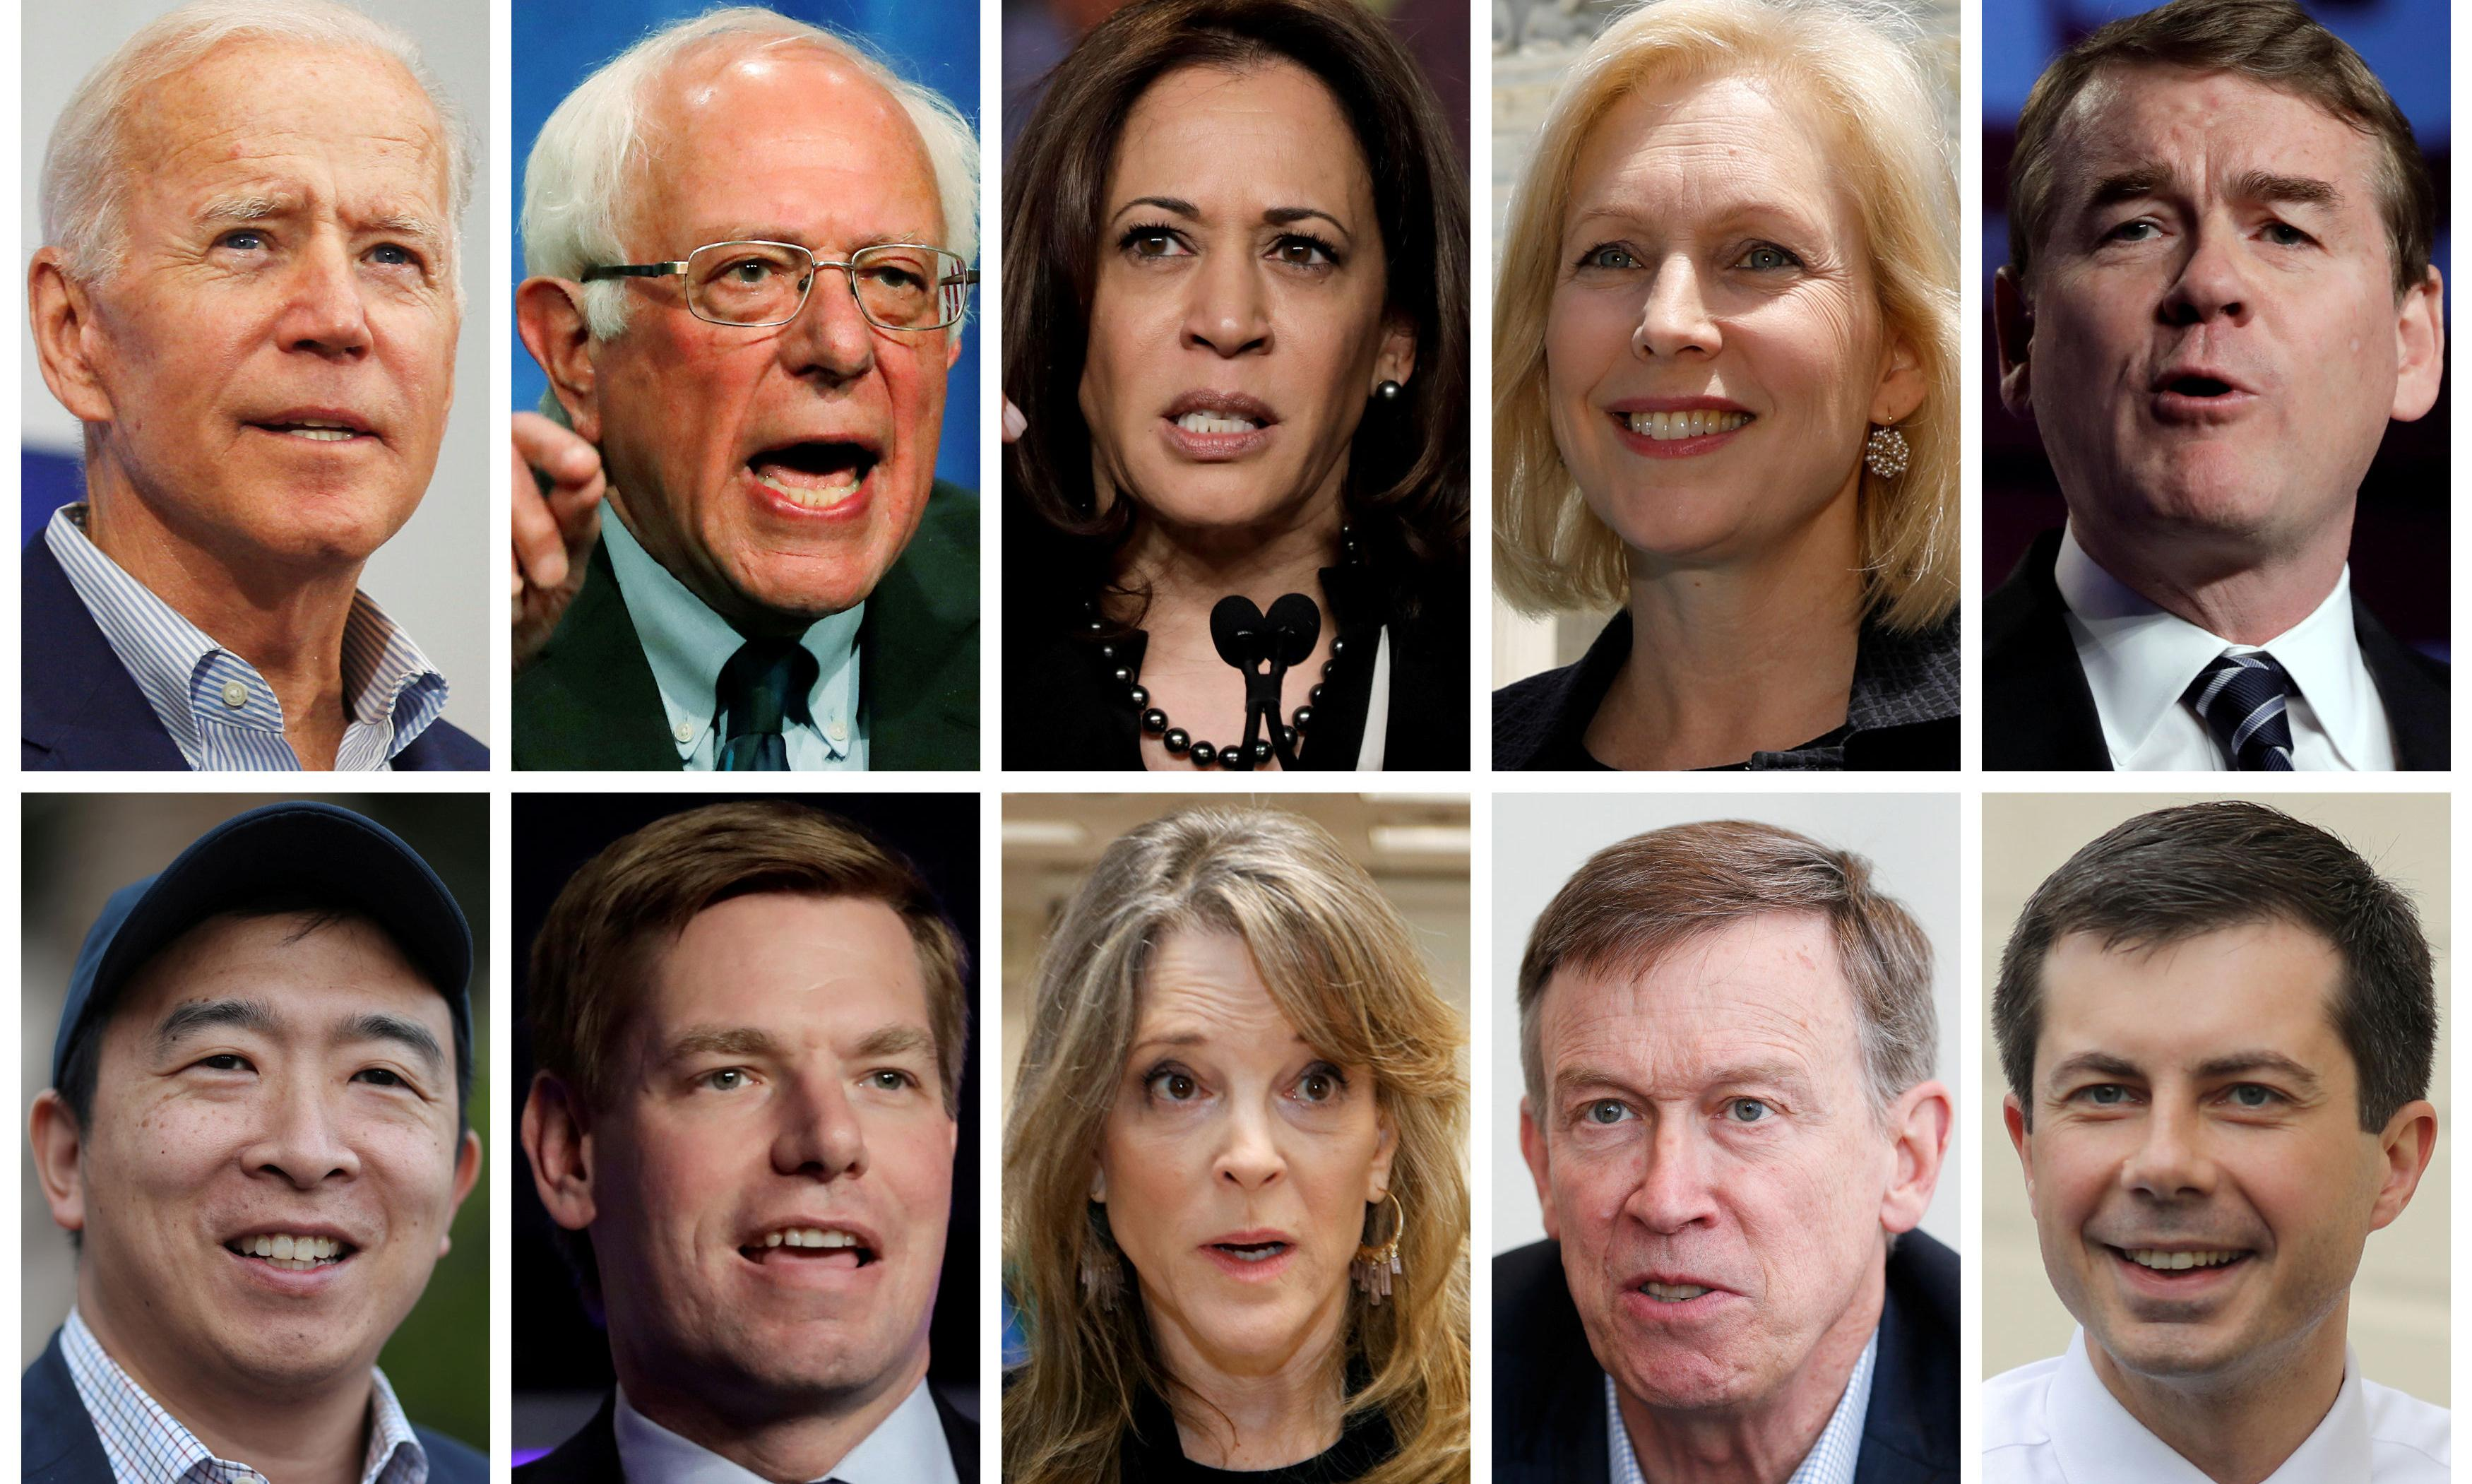 Democratic candidates debate: Sanders, Harris and Biden will spar in two-night event